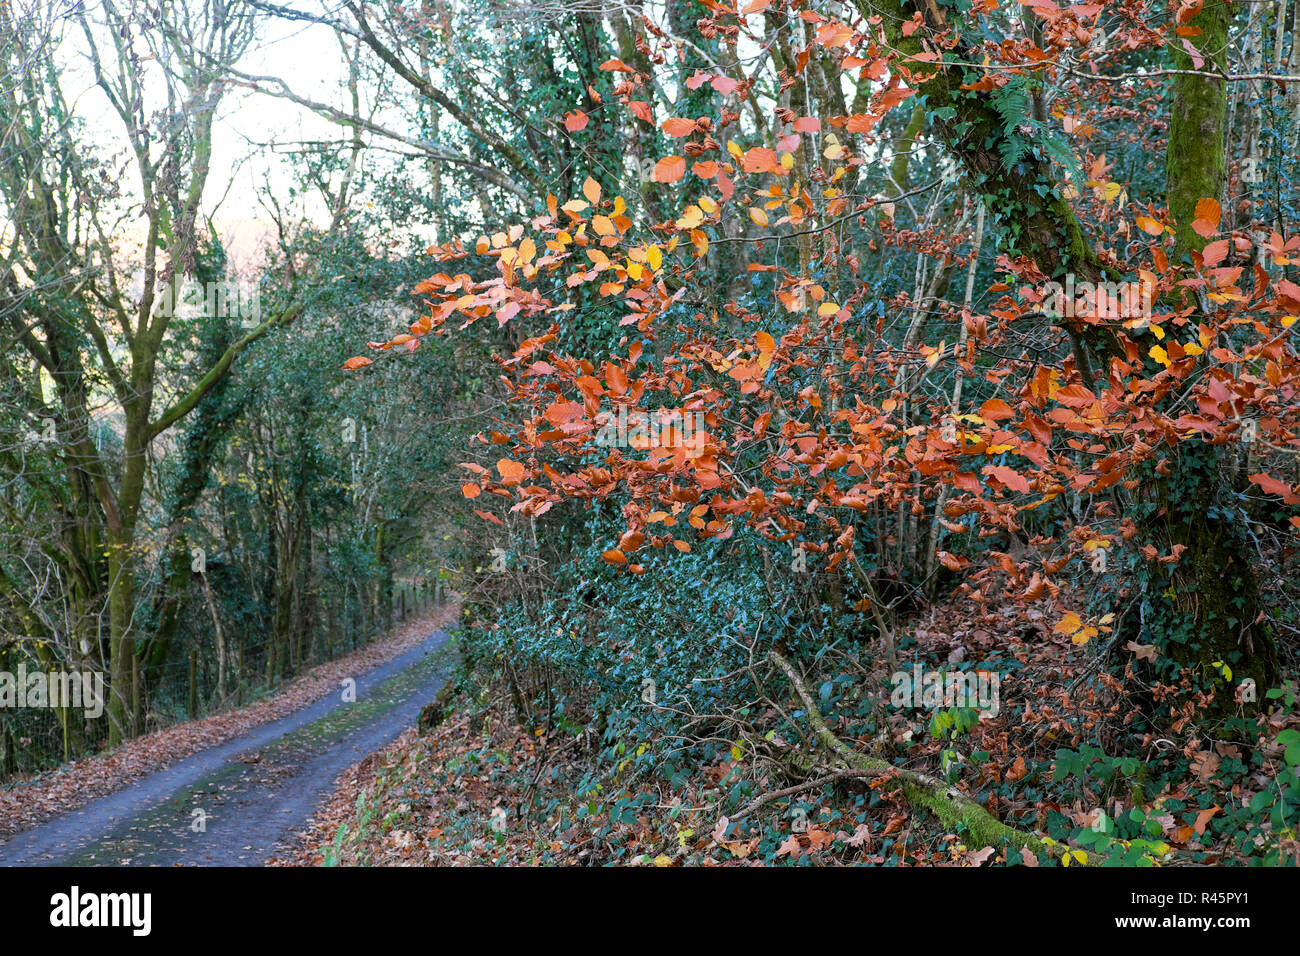 View of colourful autumn landscape with trees and rural country road in November sunshine near Llandovery Carmarthenshire West Wales UK  KATHY DEWITT Stock Photo